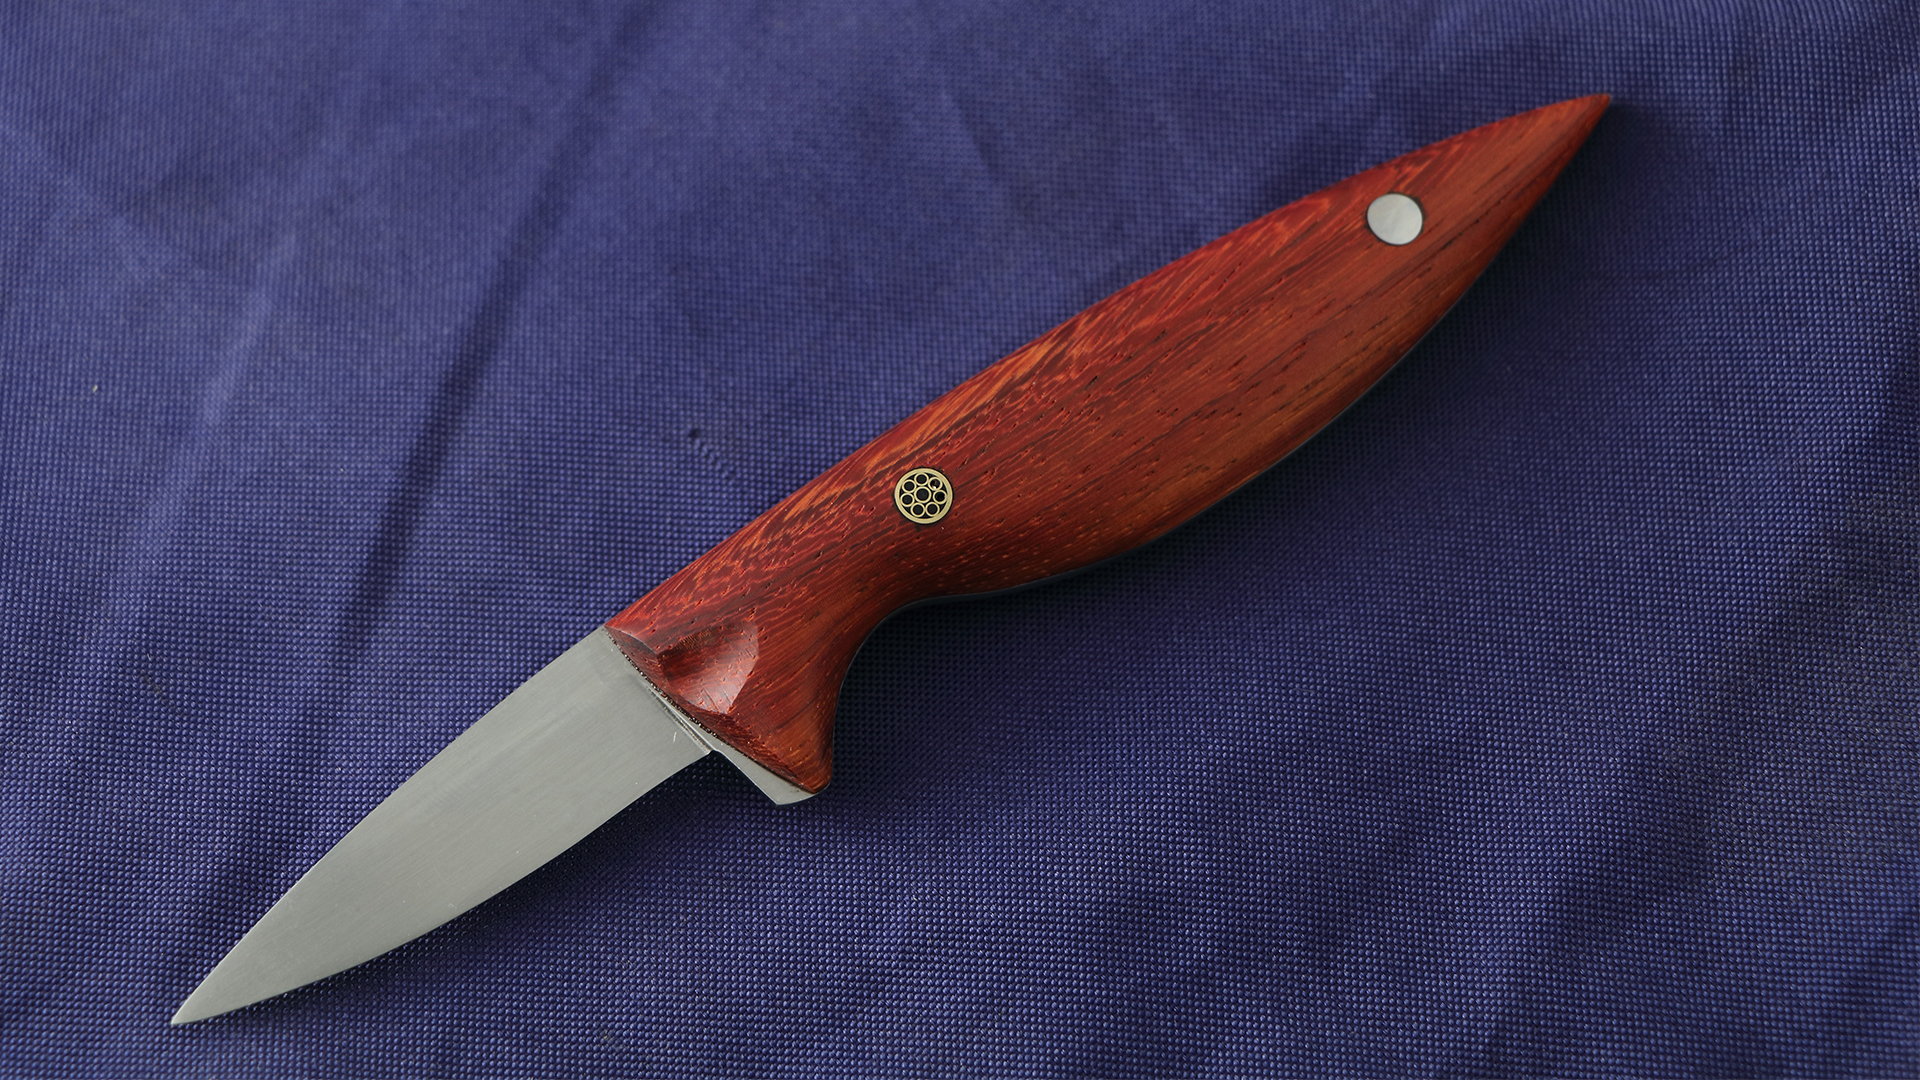 Paduk wood is used as handle material on the ''Original'' oyster knife.